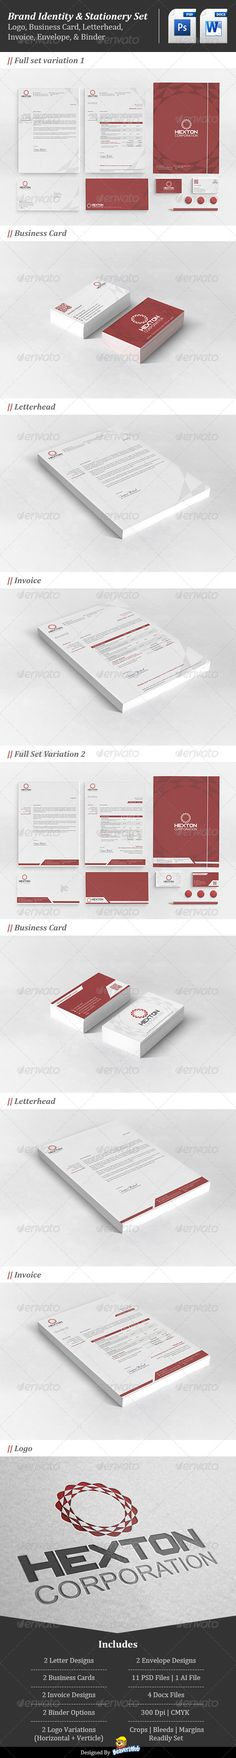 Corporate Brand Identity : Hexton Corporation  #logo #red #stationary • Click here to download ! http://graphicriver.net/item/corporate-brand-identity-hexton-corporation/4620579?s_rank=52&ref=pxcr